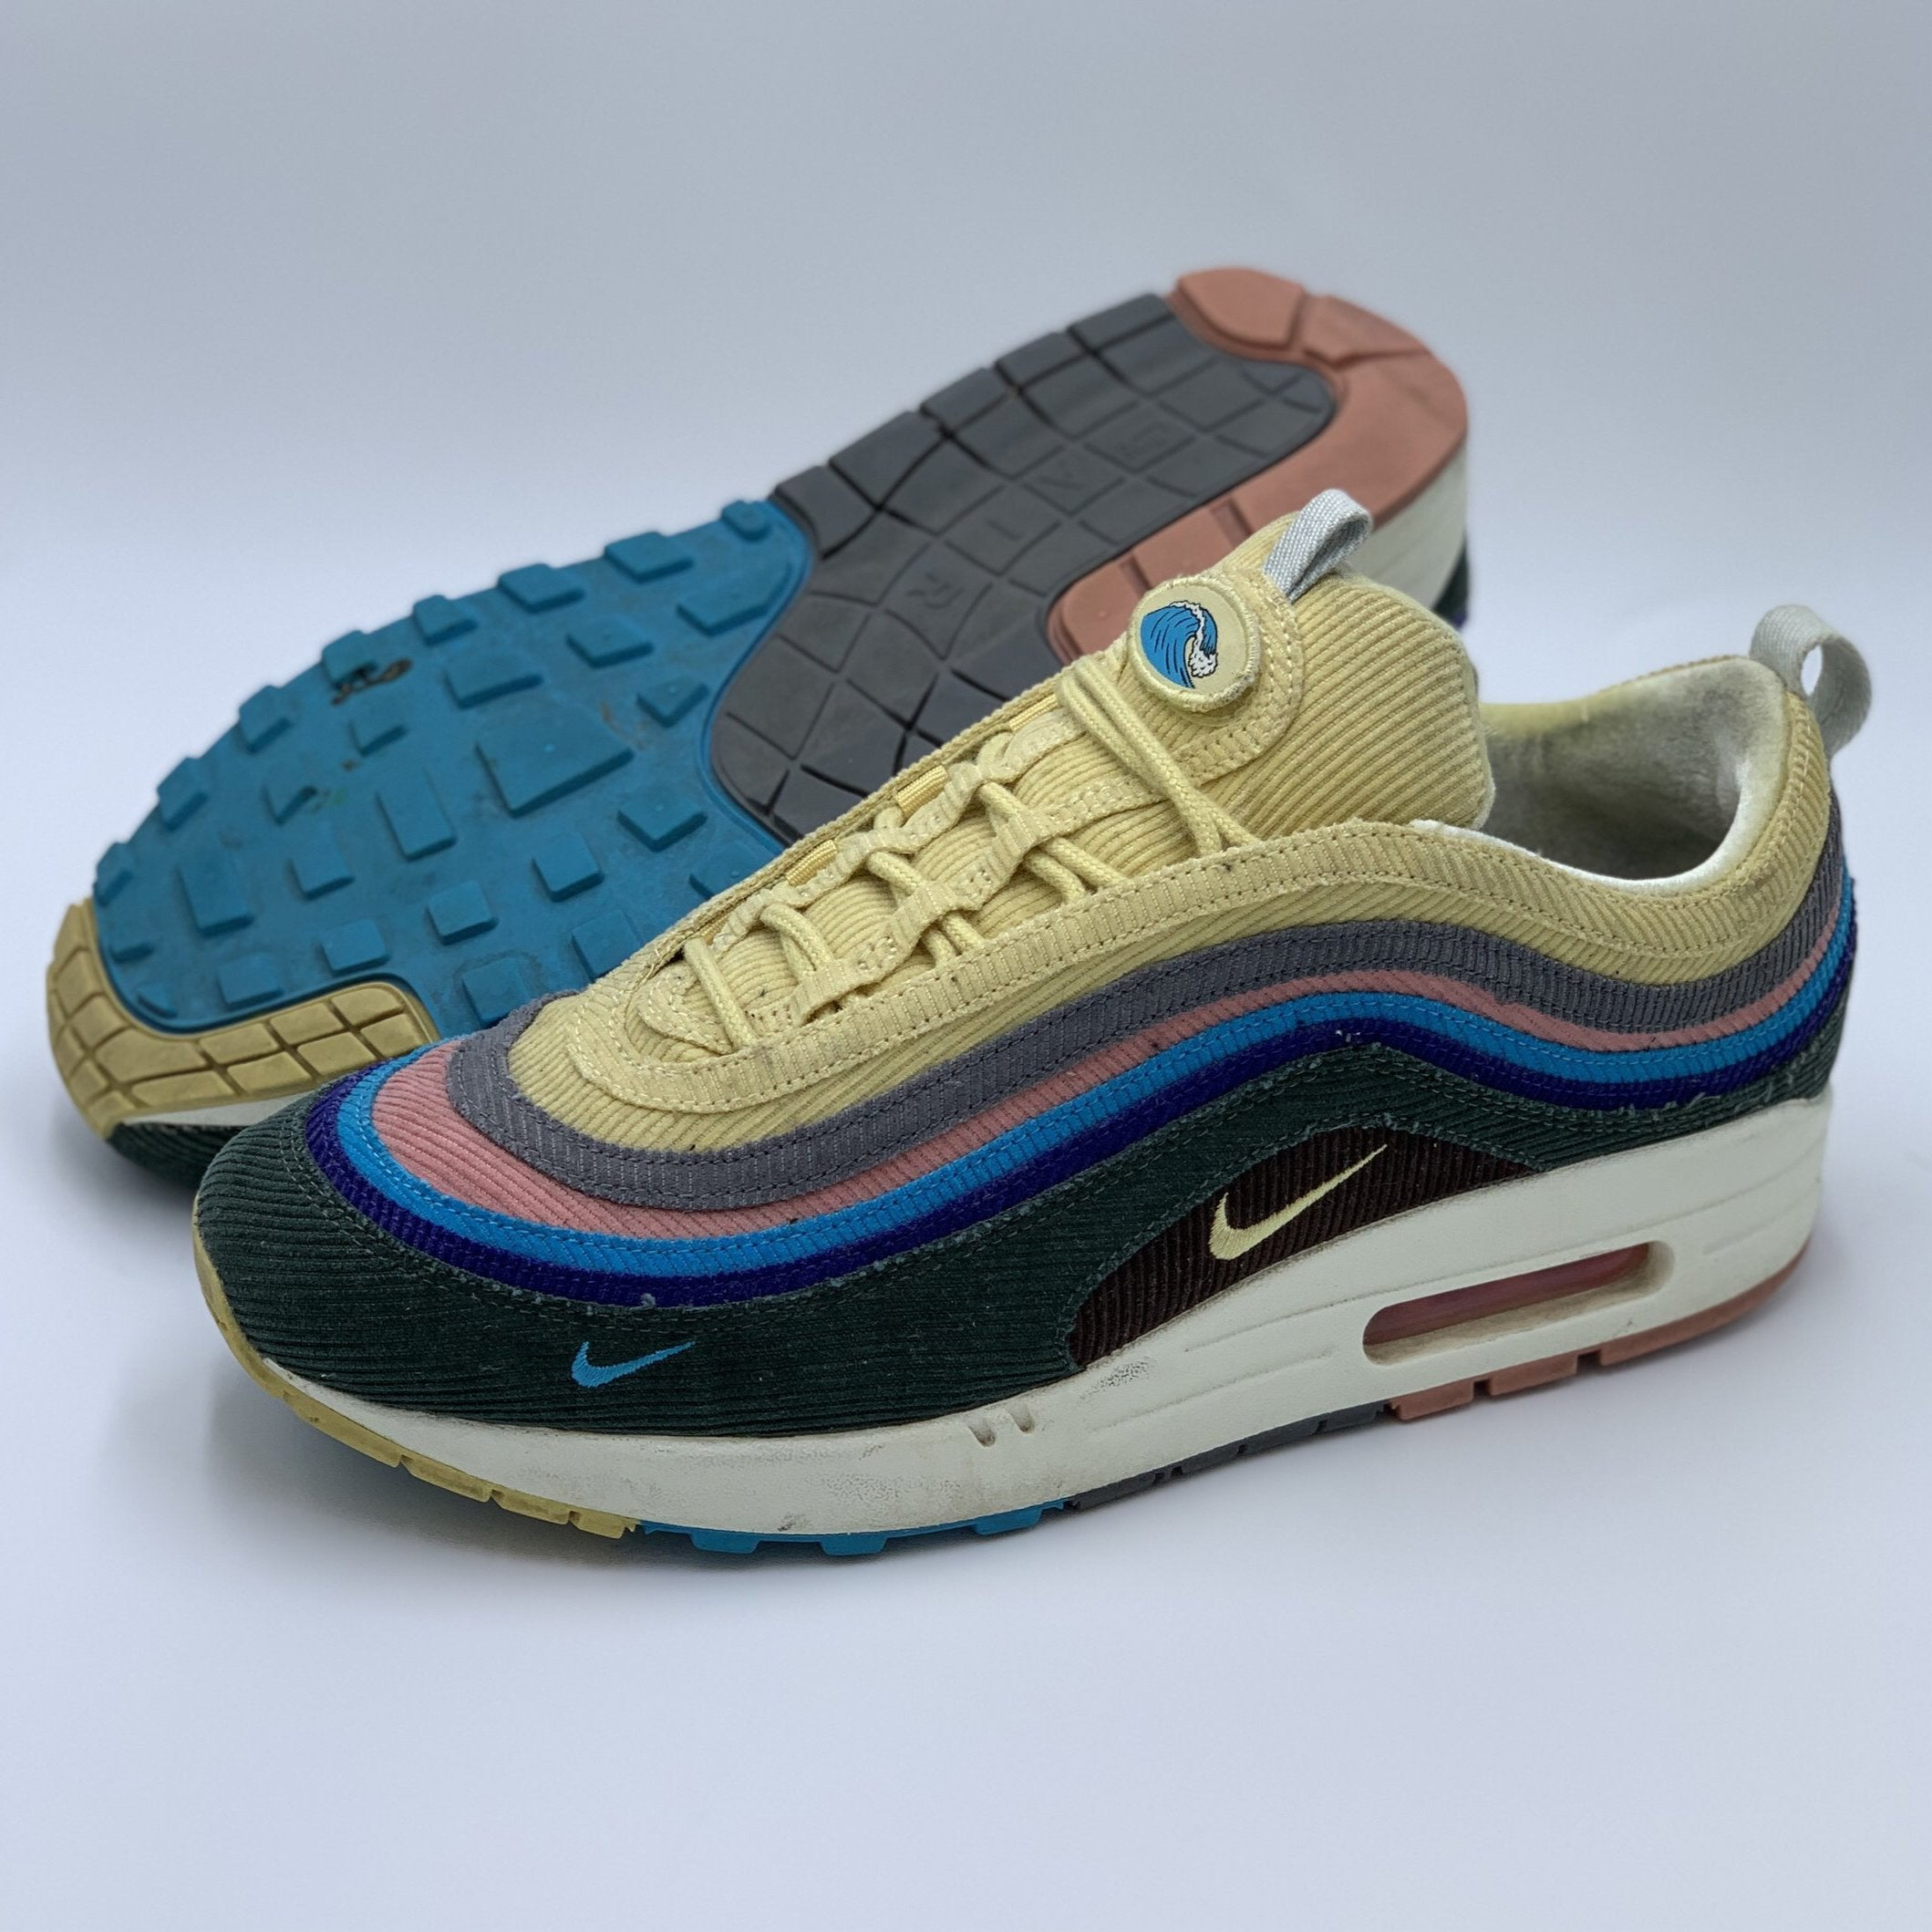 AM 97/1 Sean Wotherspoon Size 10